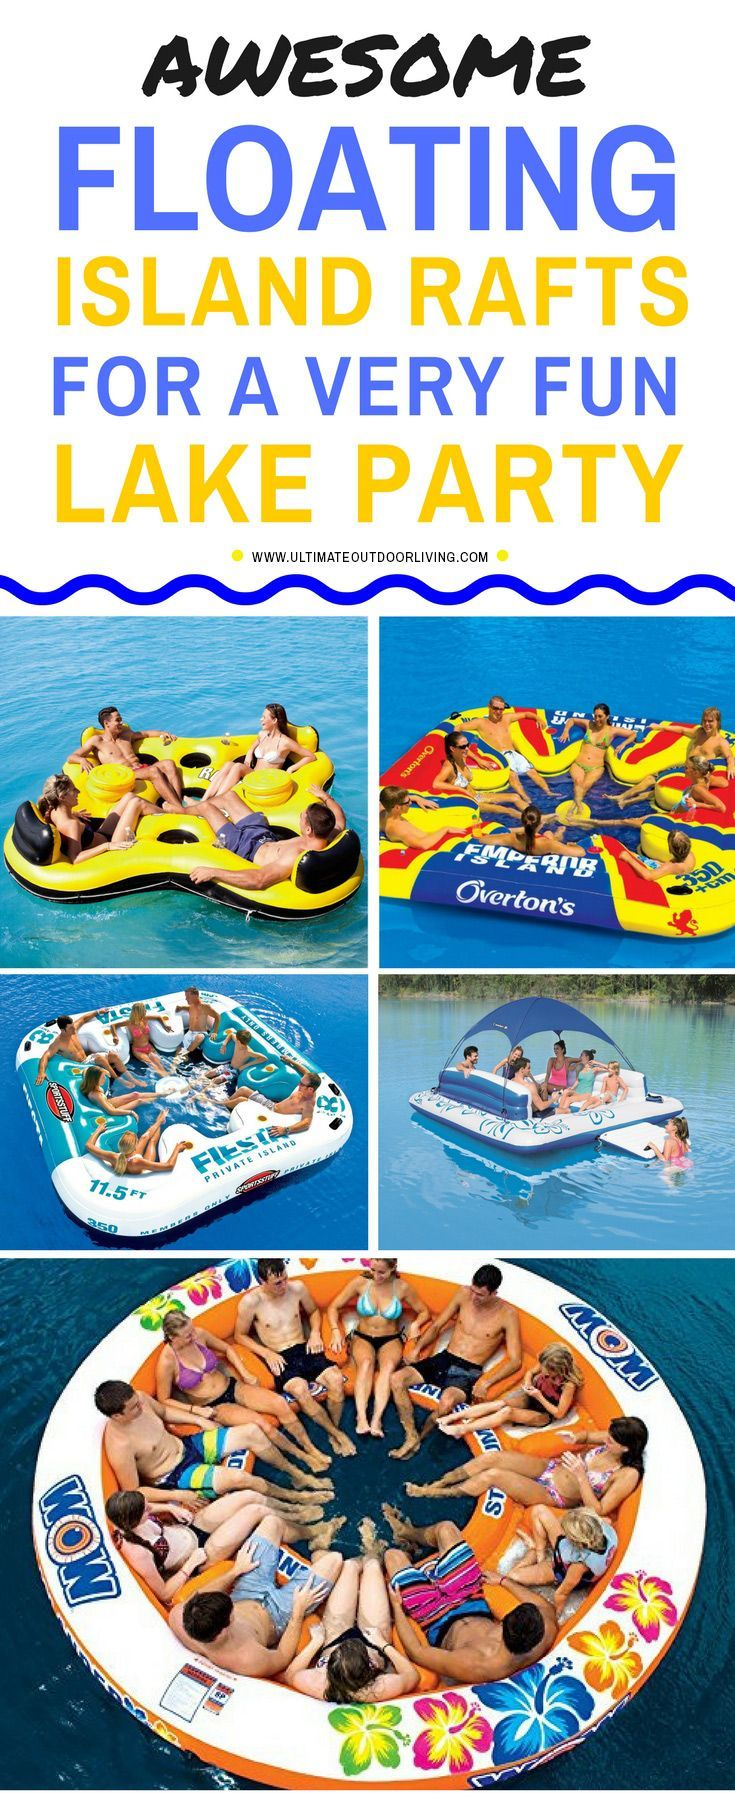 Awesome large floats for the lake  for a fun lake party. These floats can hav…